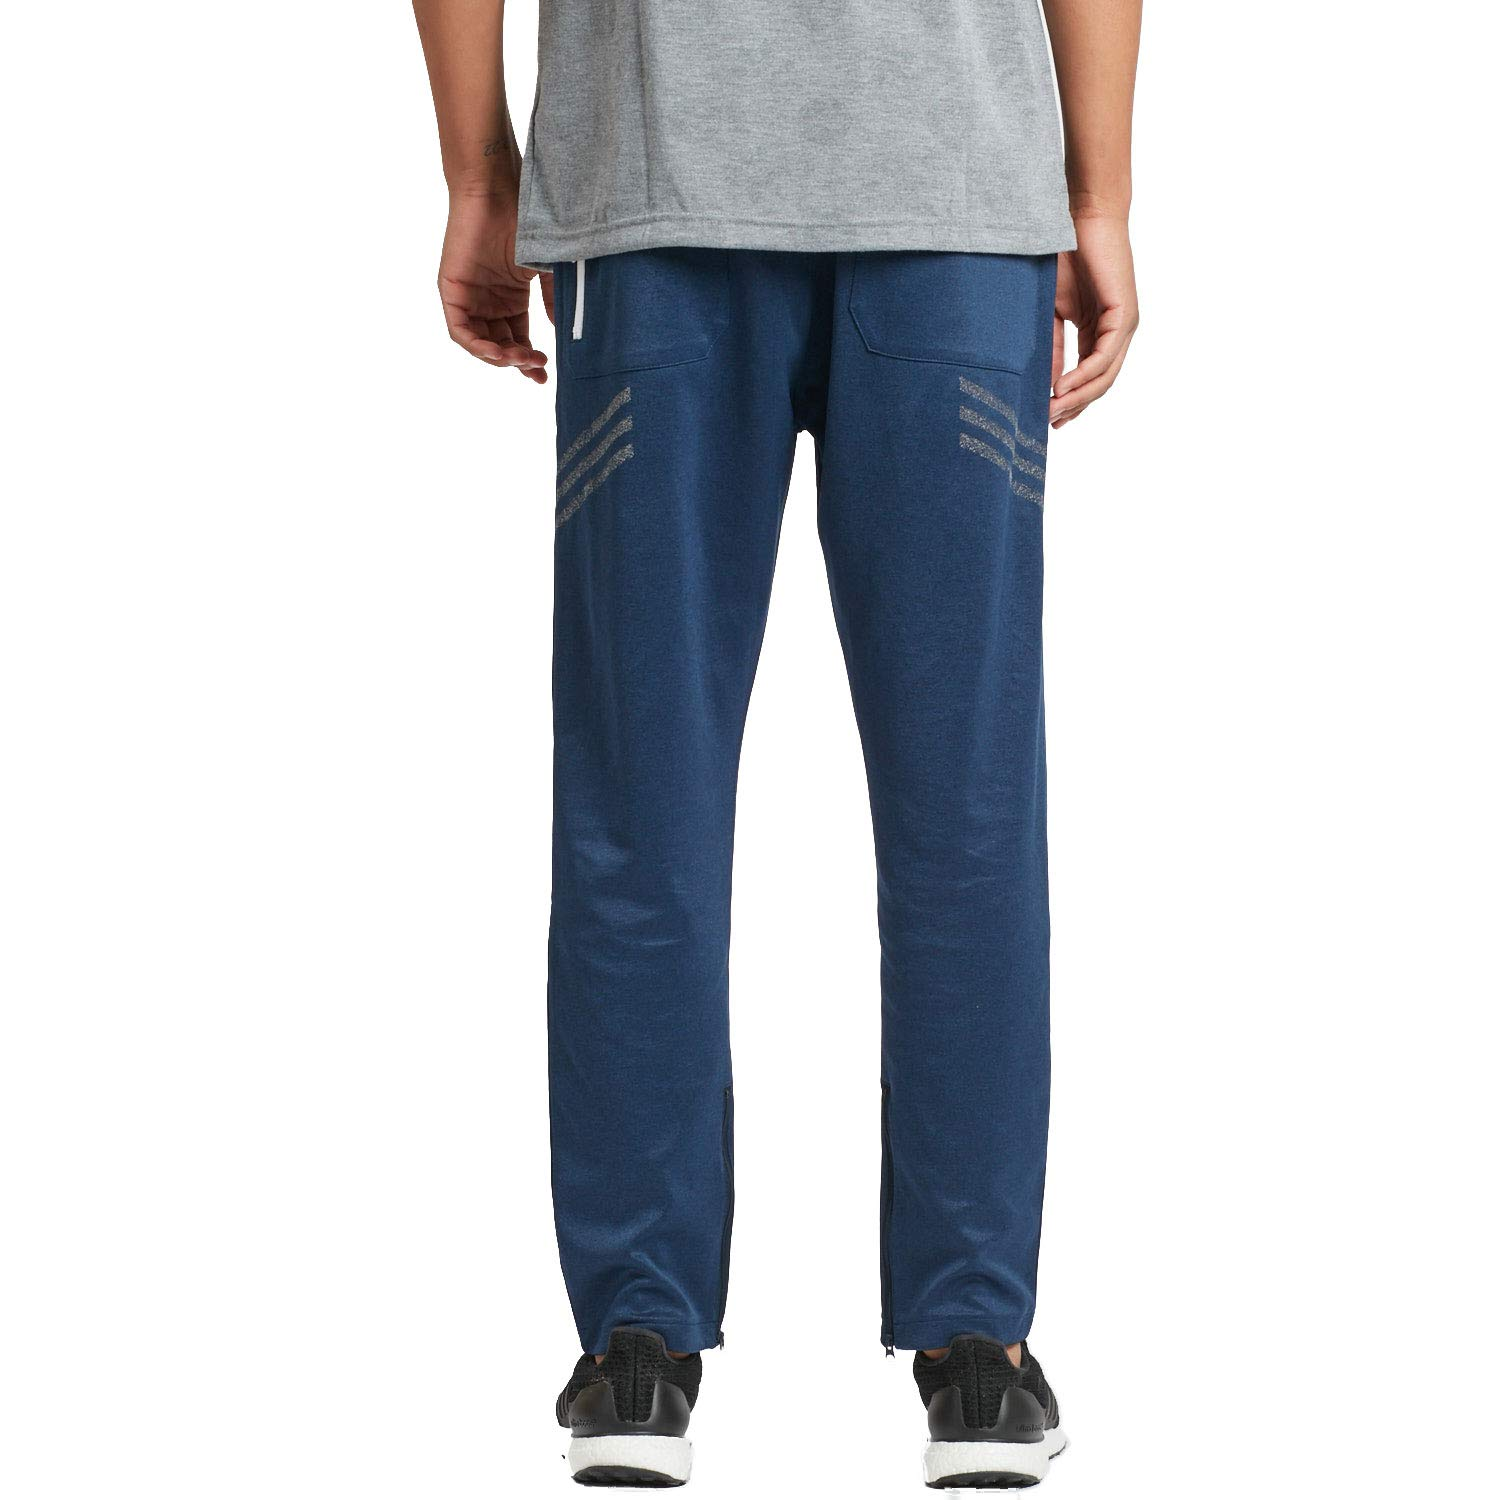 Adidas x United Arrows & Sons Classic Track Pants at Amazon